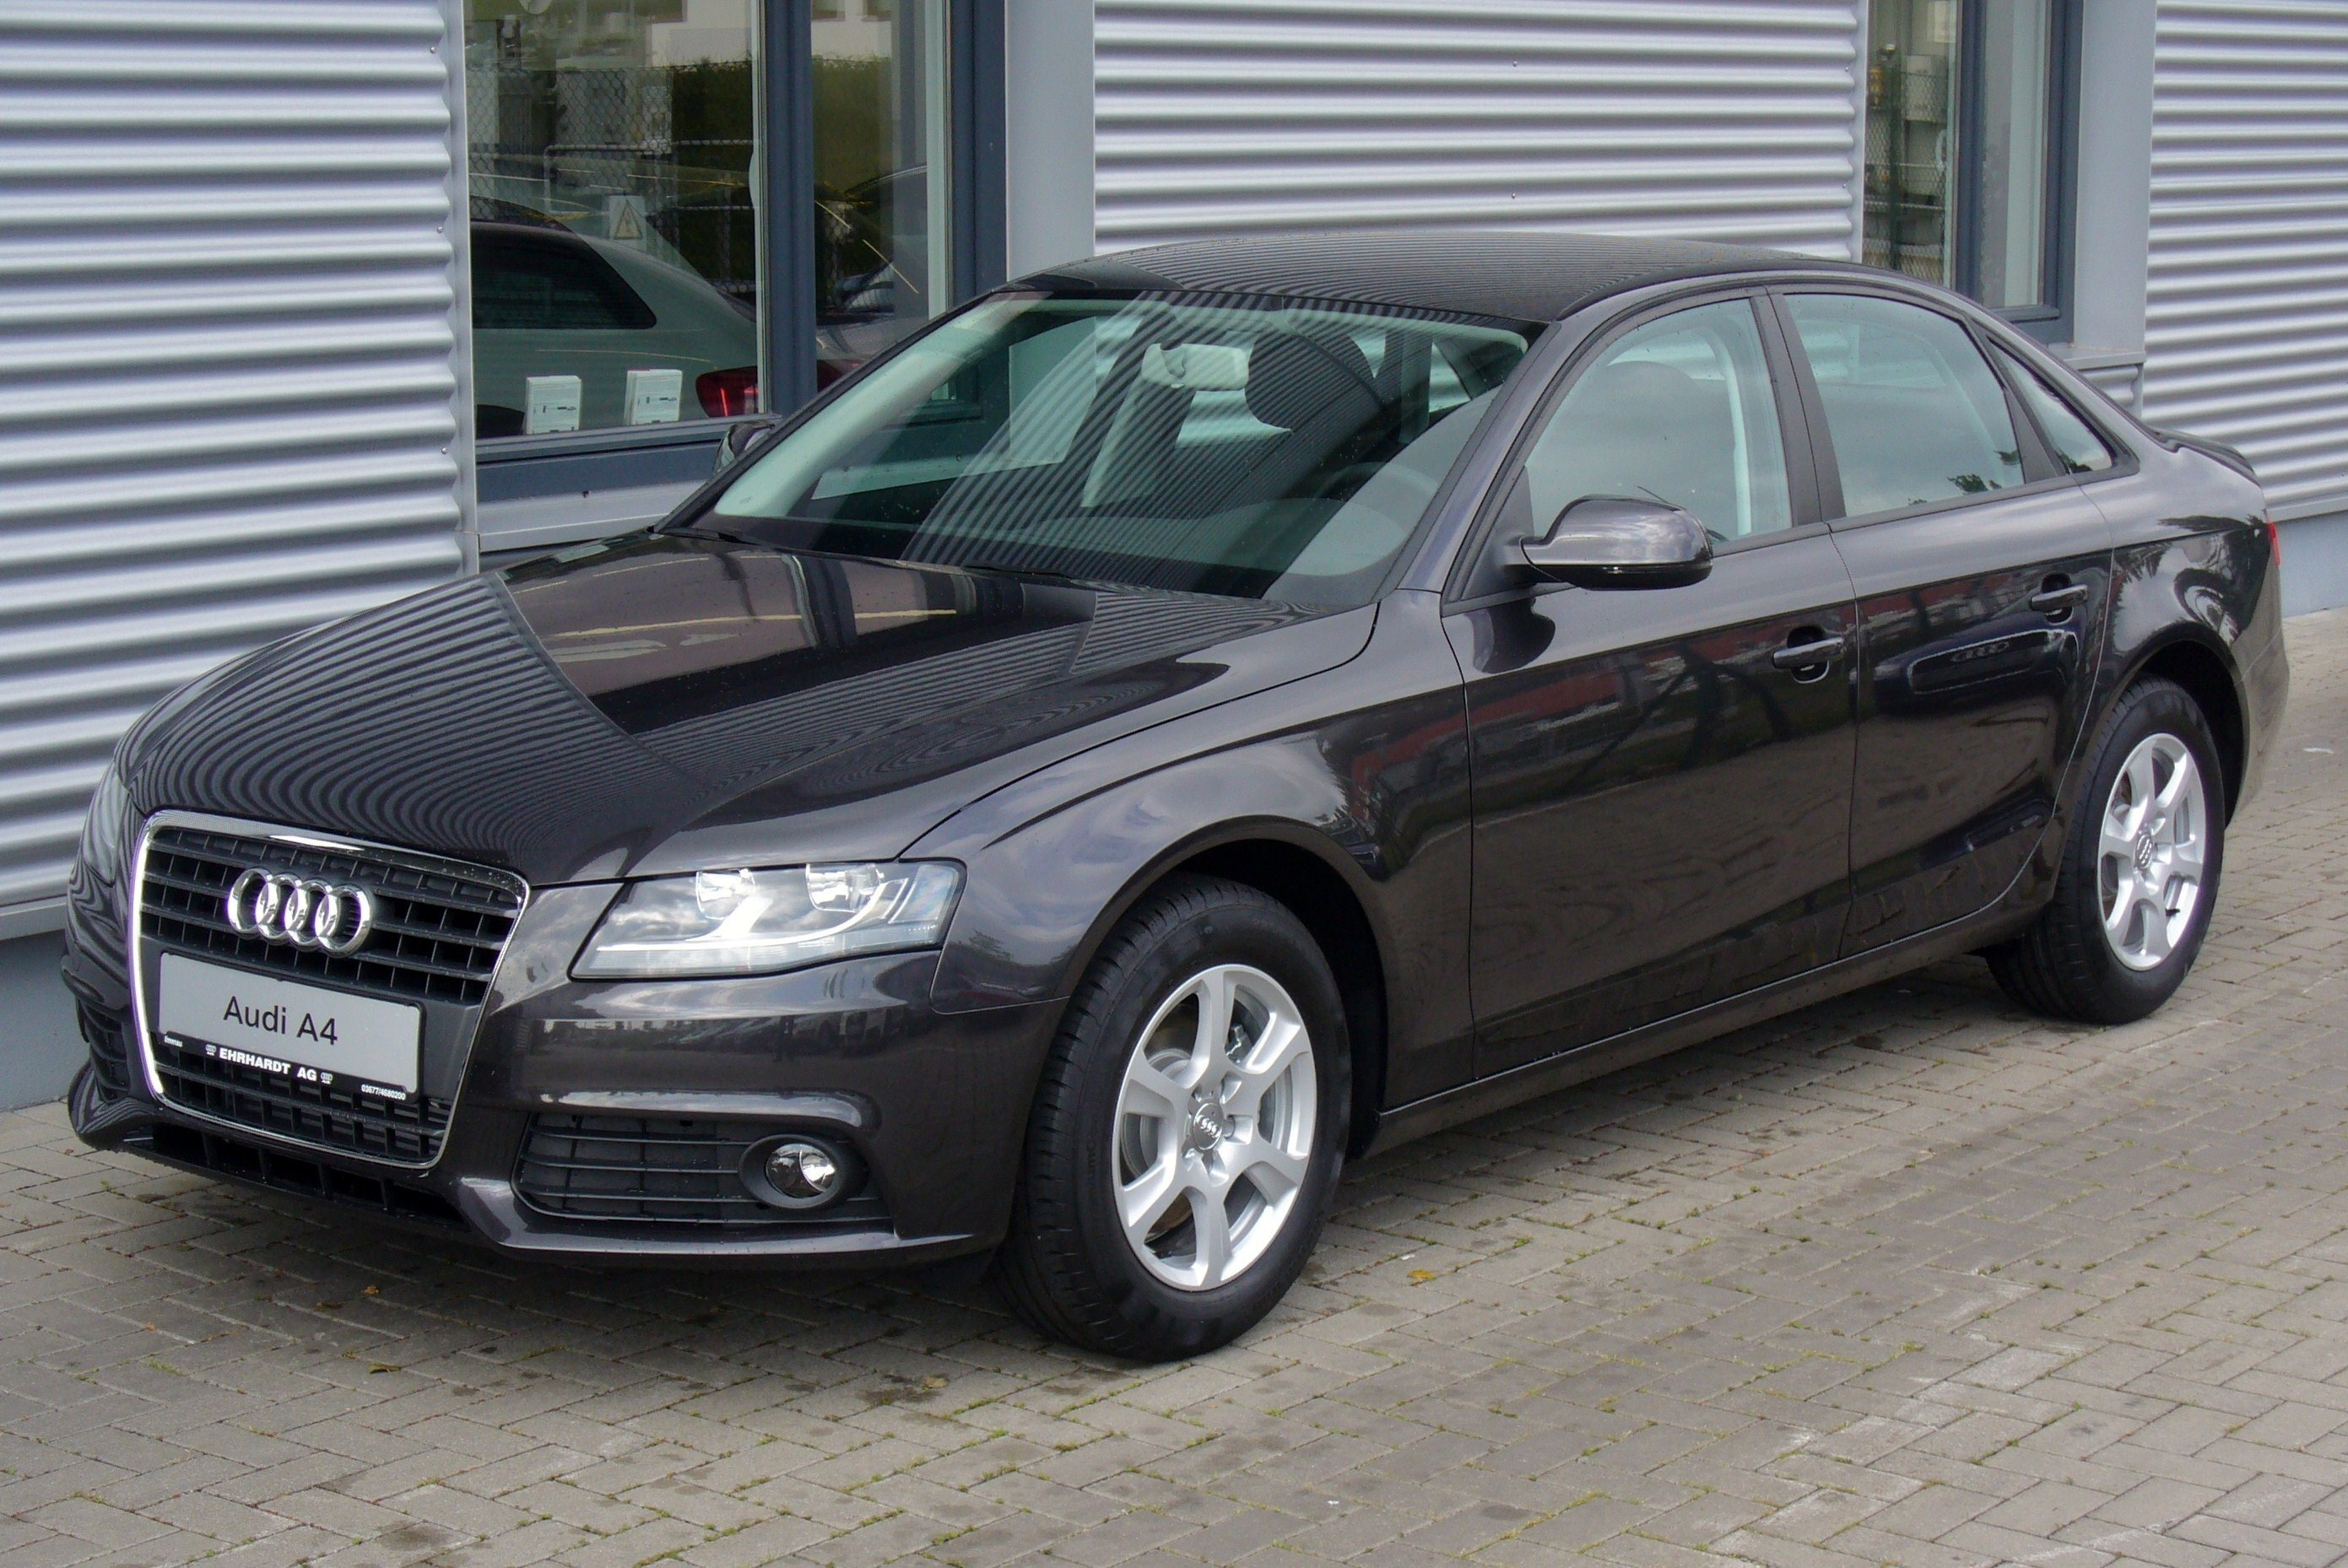 Audi a4 images download